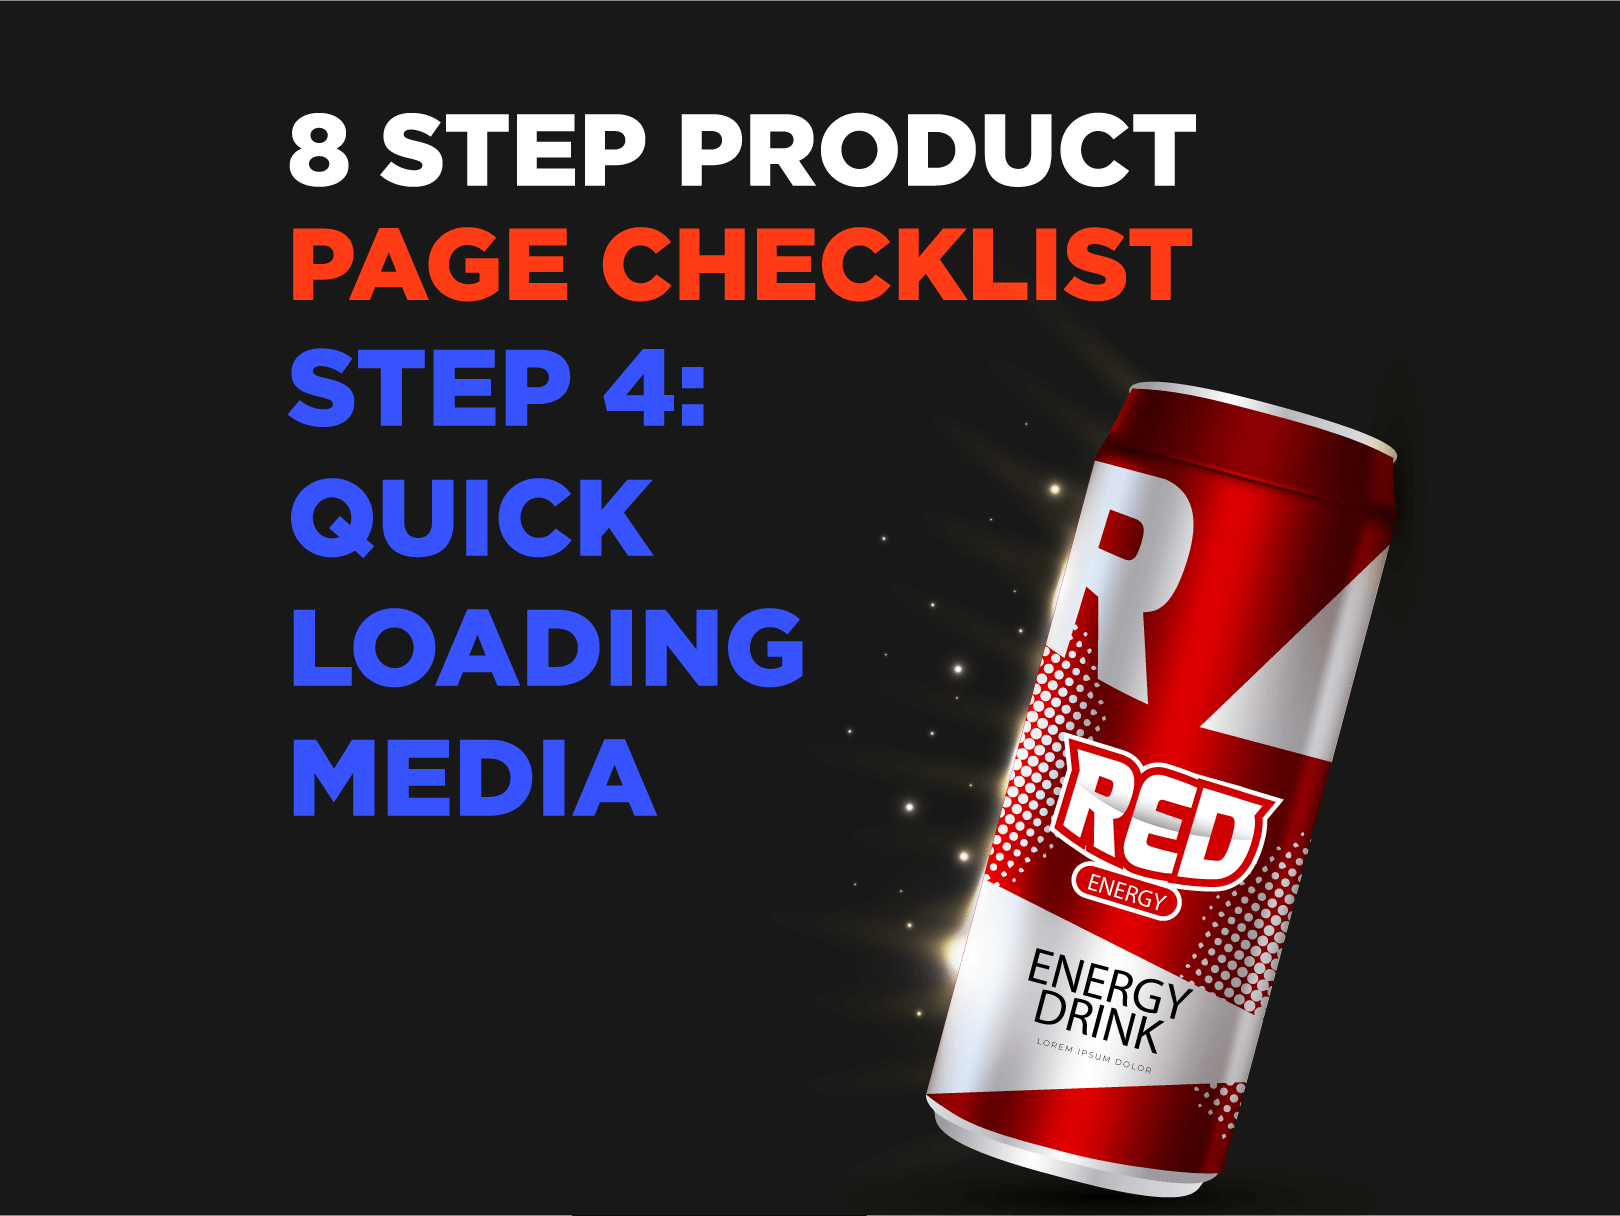 8 Step Product Page Checklist – Step 4: Quick Loading Media